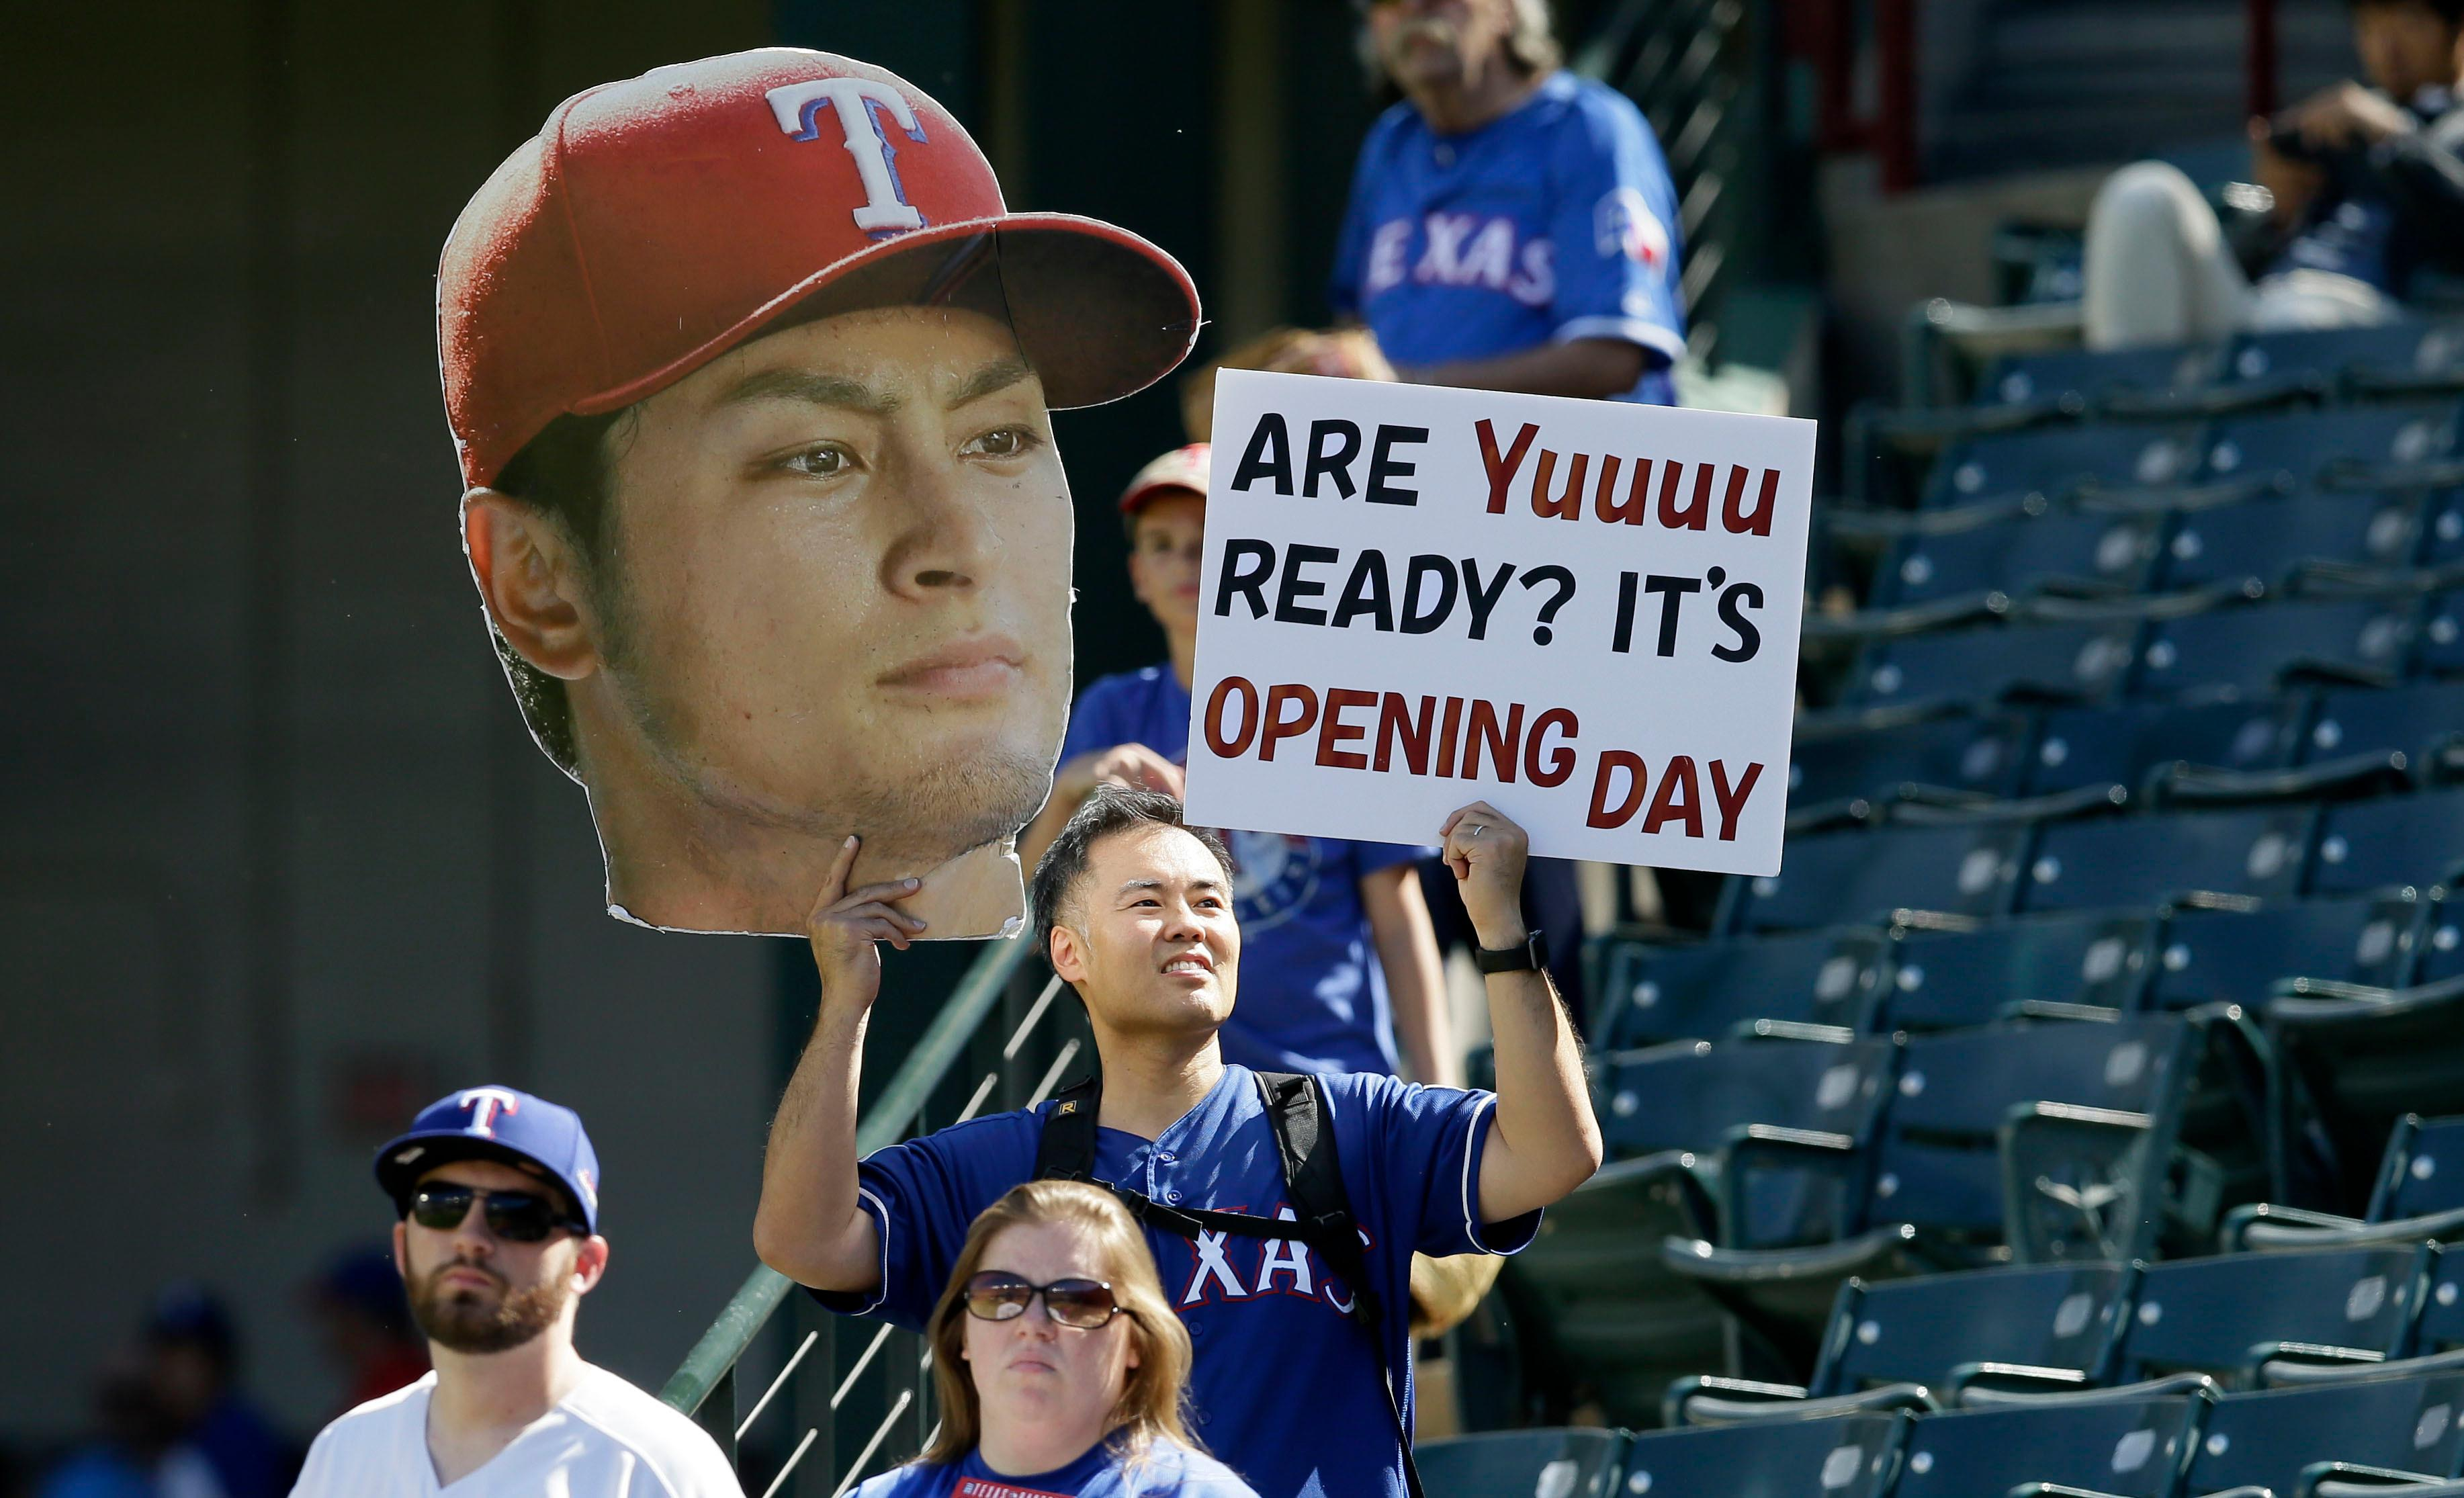 Color game ray otero - A Fan Holds Up A Sign And Photo Of Texas Rangers Starting Pitcher Yu Darvish Of